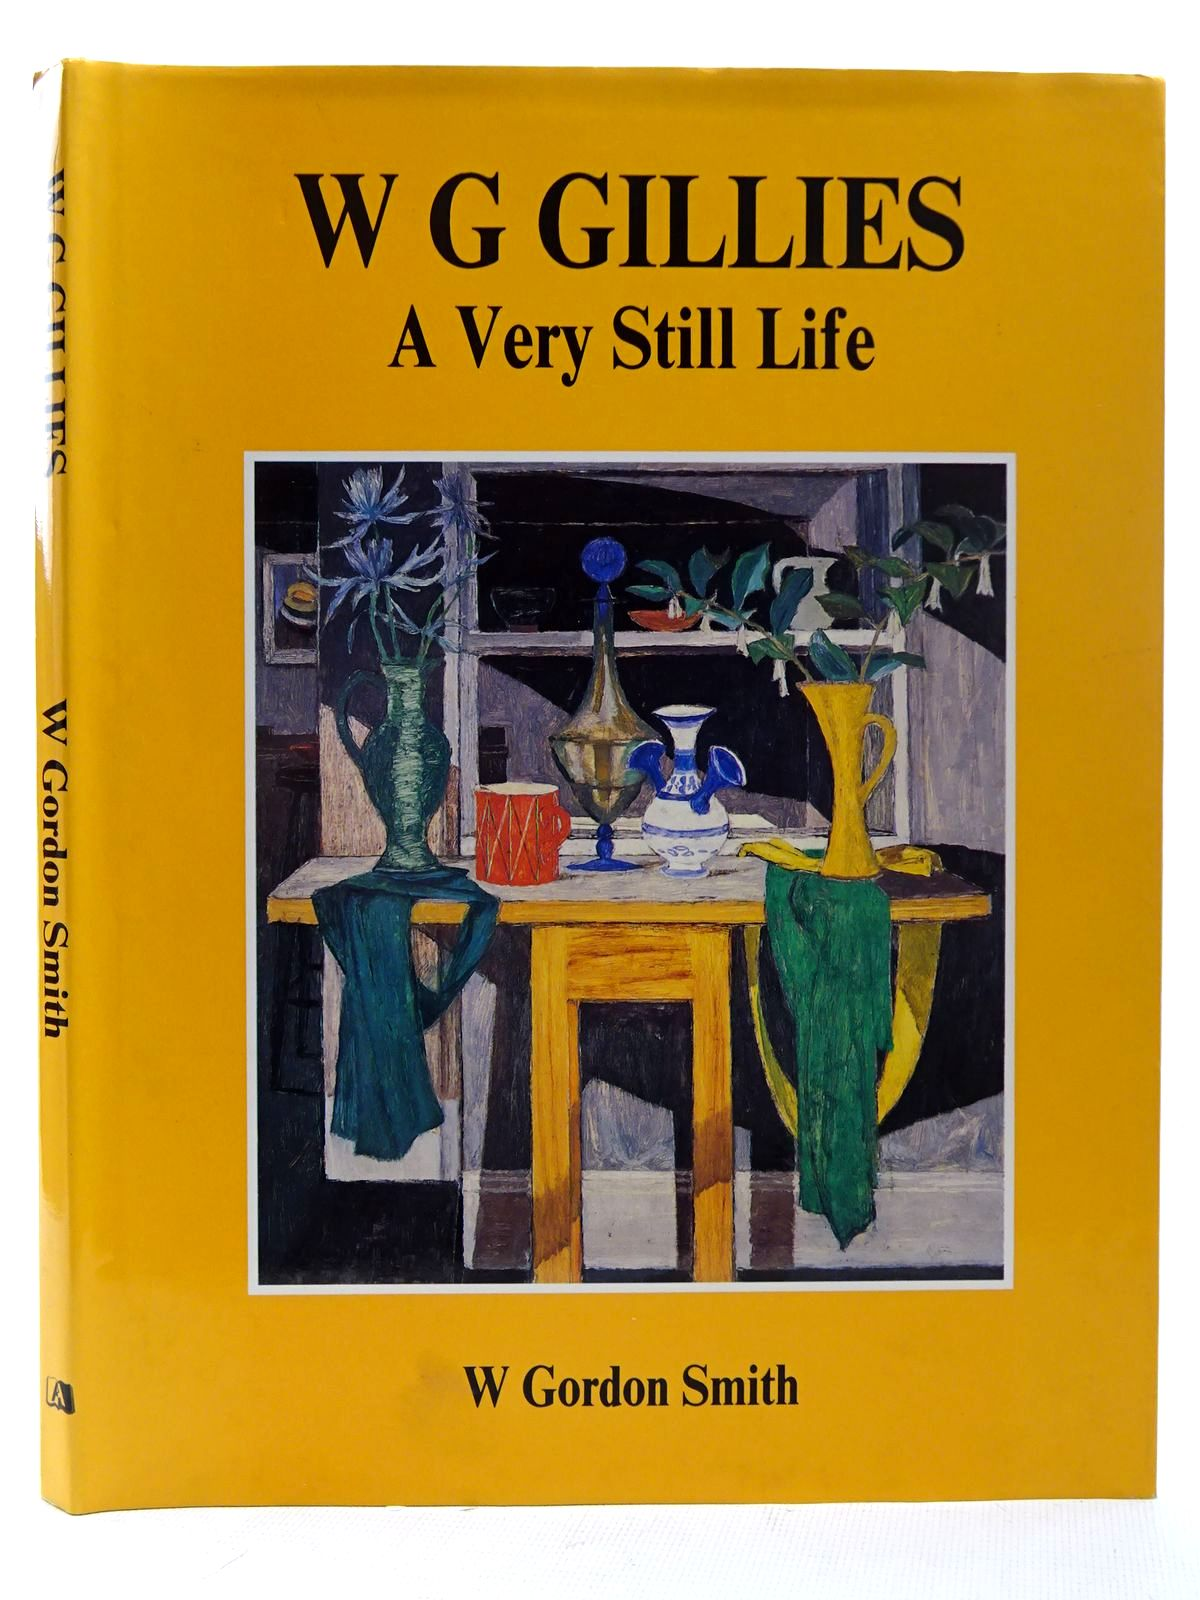 Photo of W G GILLIES A VERY STILL LIFE written by Smith, W. Gordon illustrated by Gillies, W.G. published by Atelier Books (STOCK CODE: 2126340)  for sale by Stella & Rose's Books